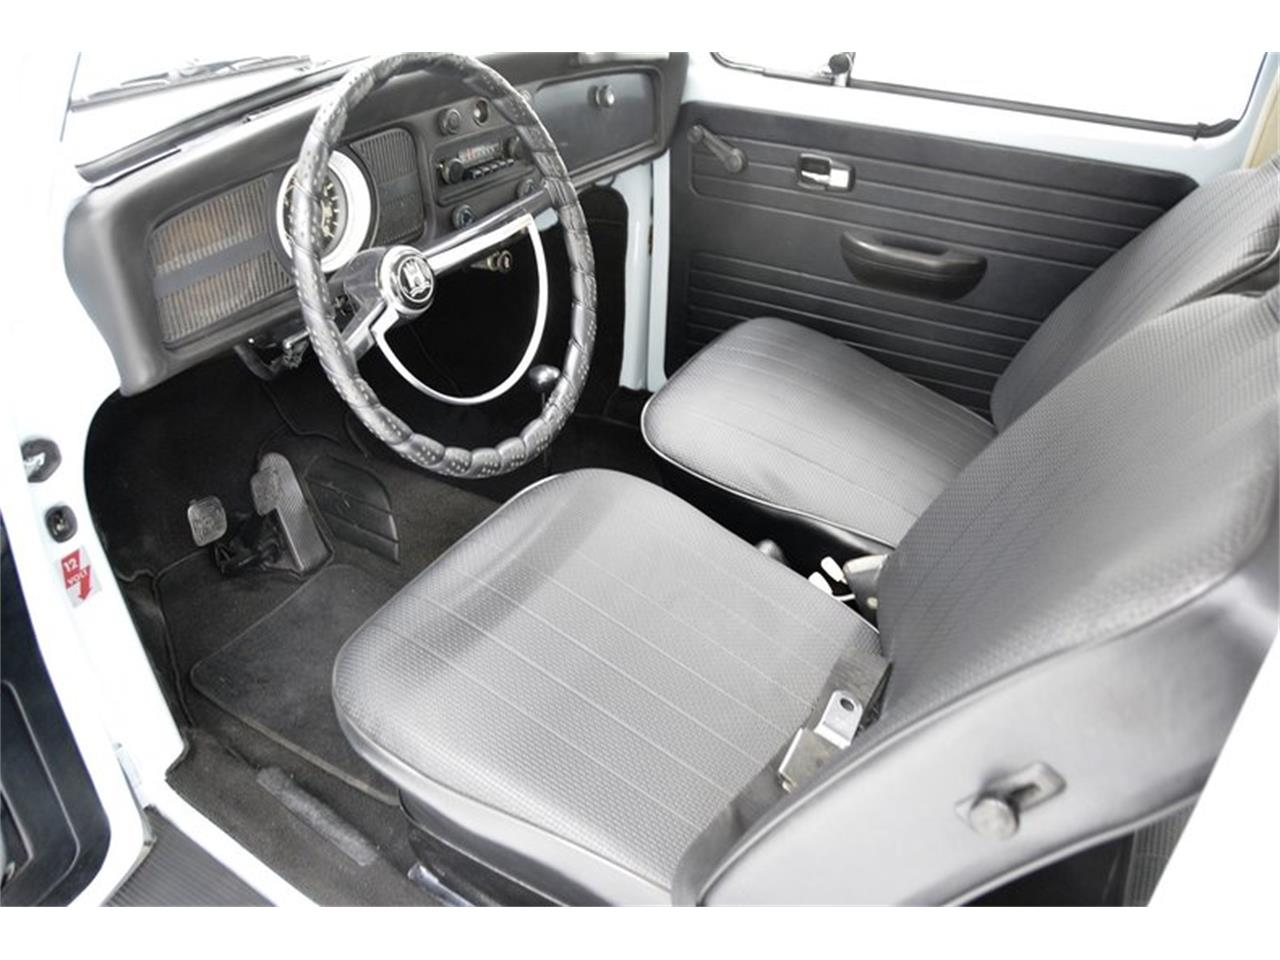 Large Picture of '70 Volkswagen Beetle located in Pennsylvania - $13,200.00 - ND5C